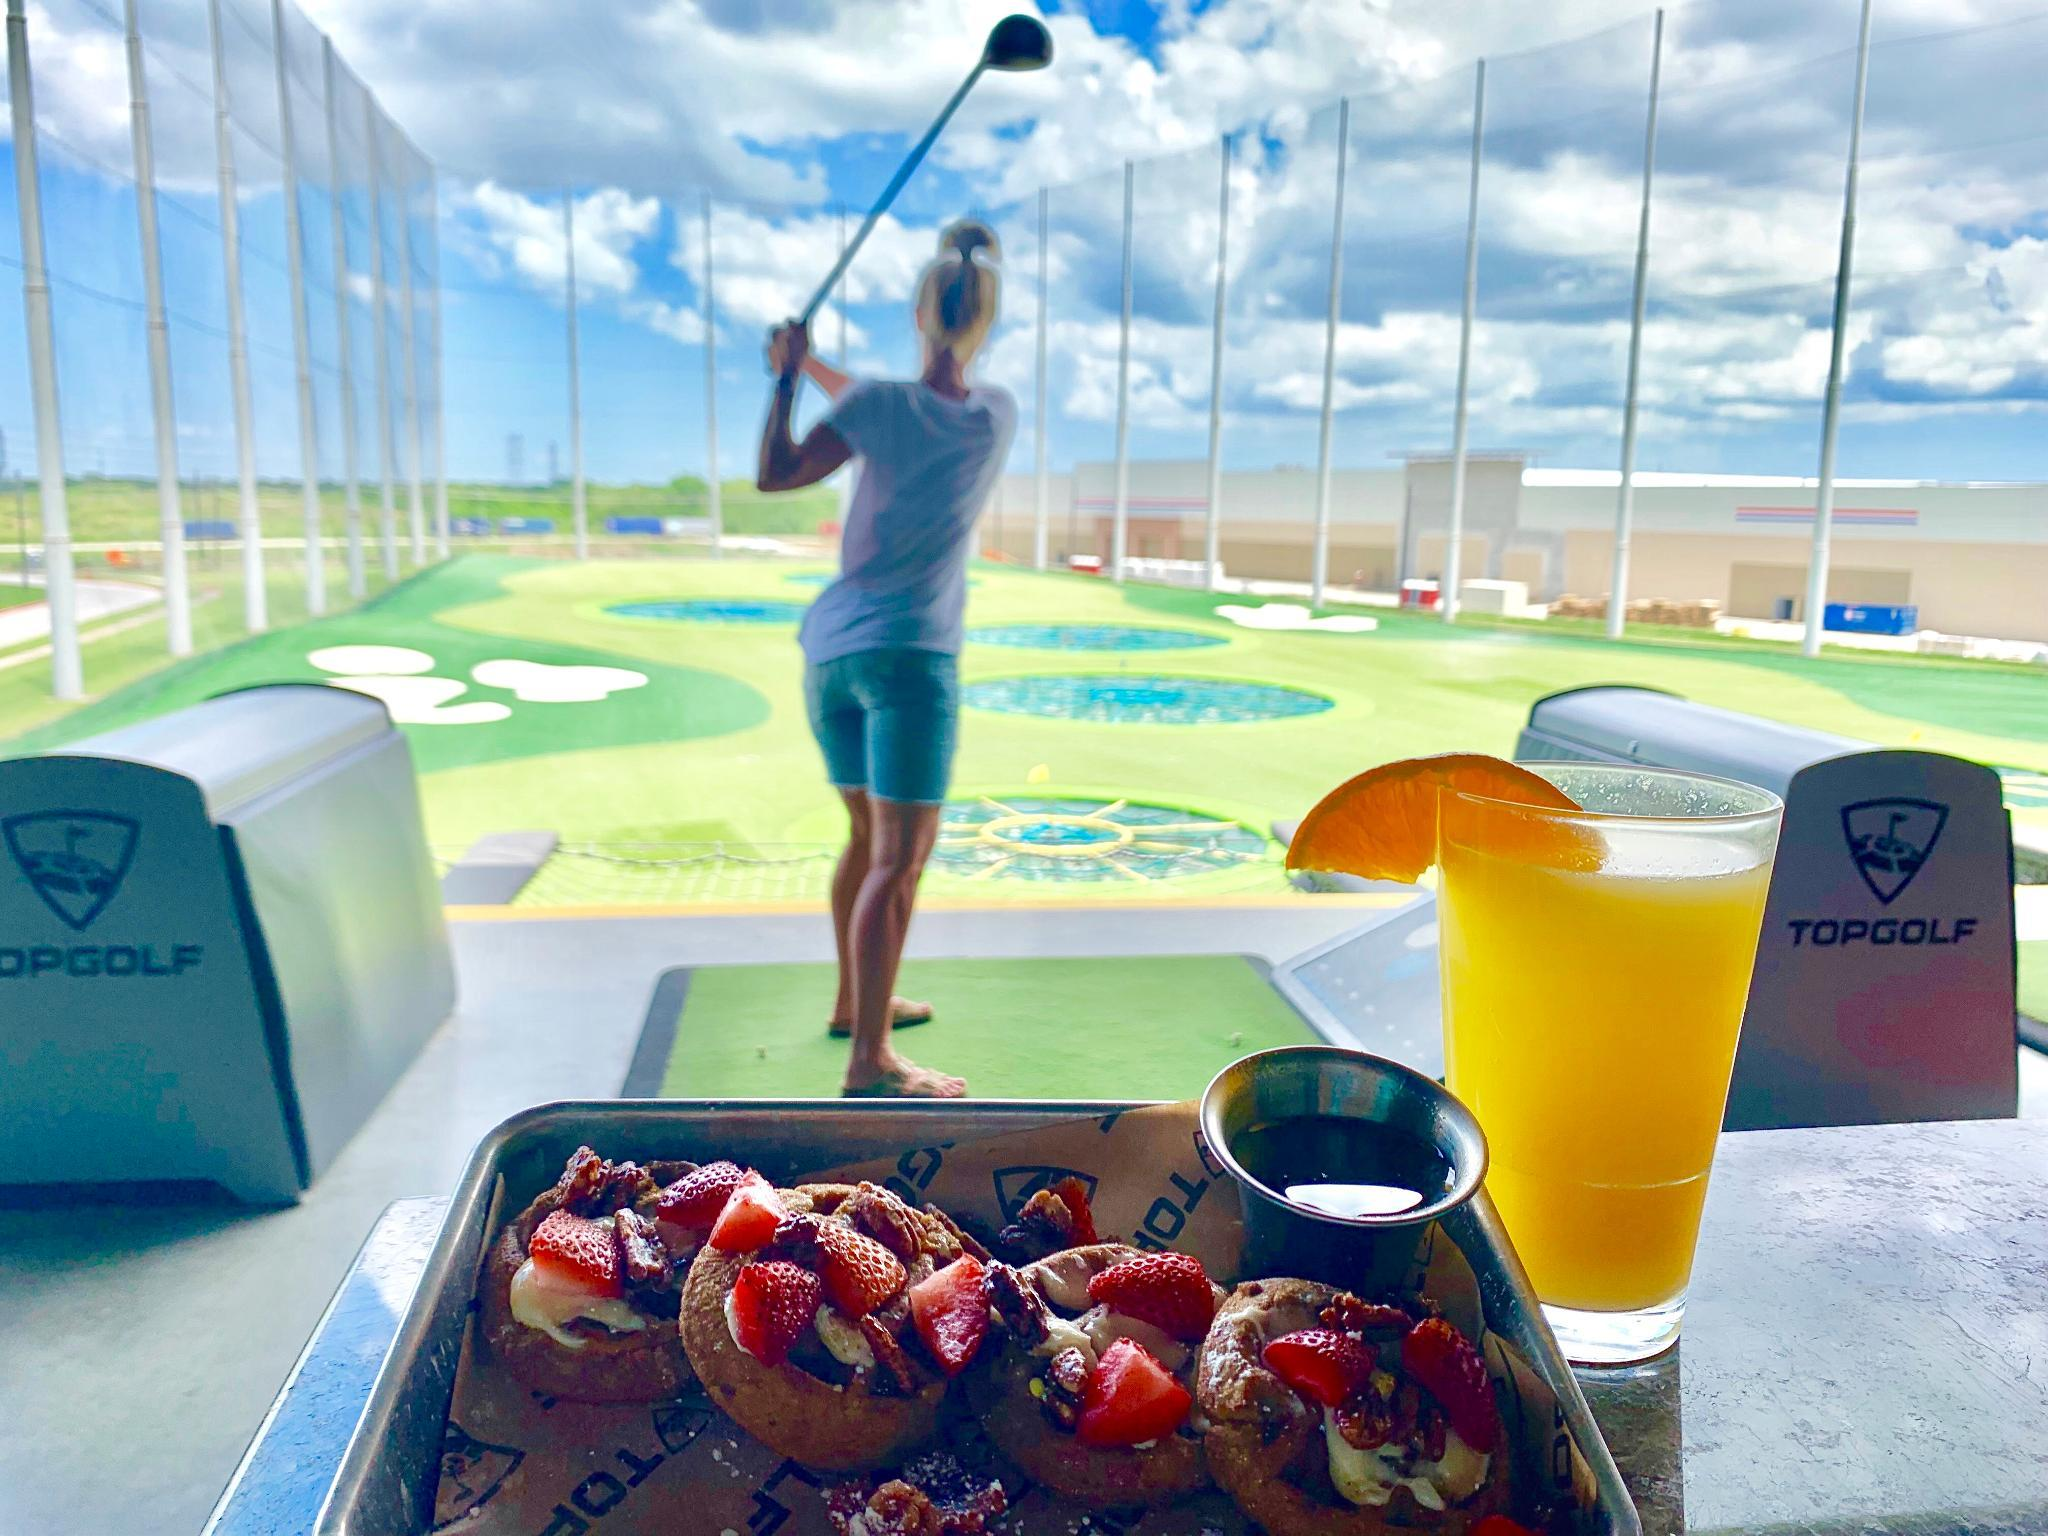 Topgolf best places to play